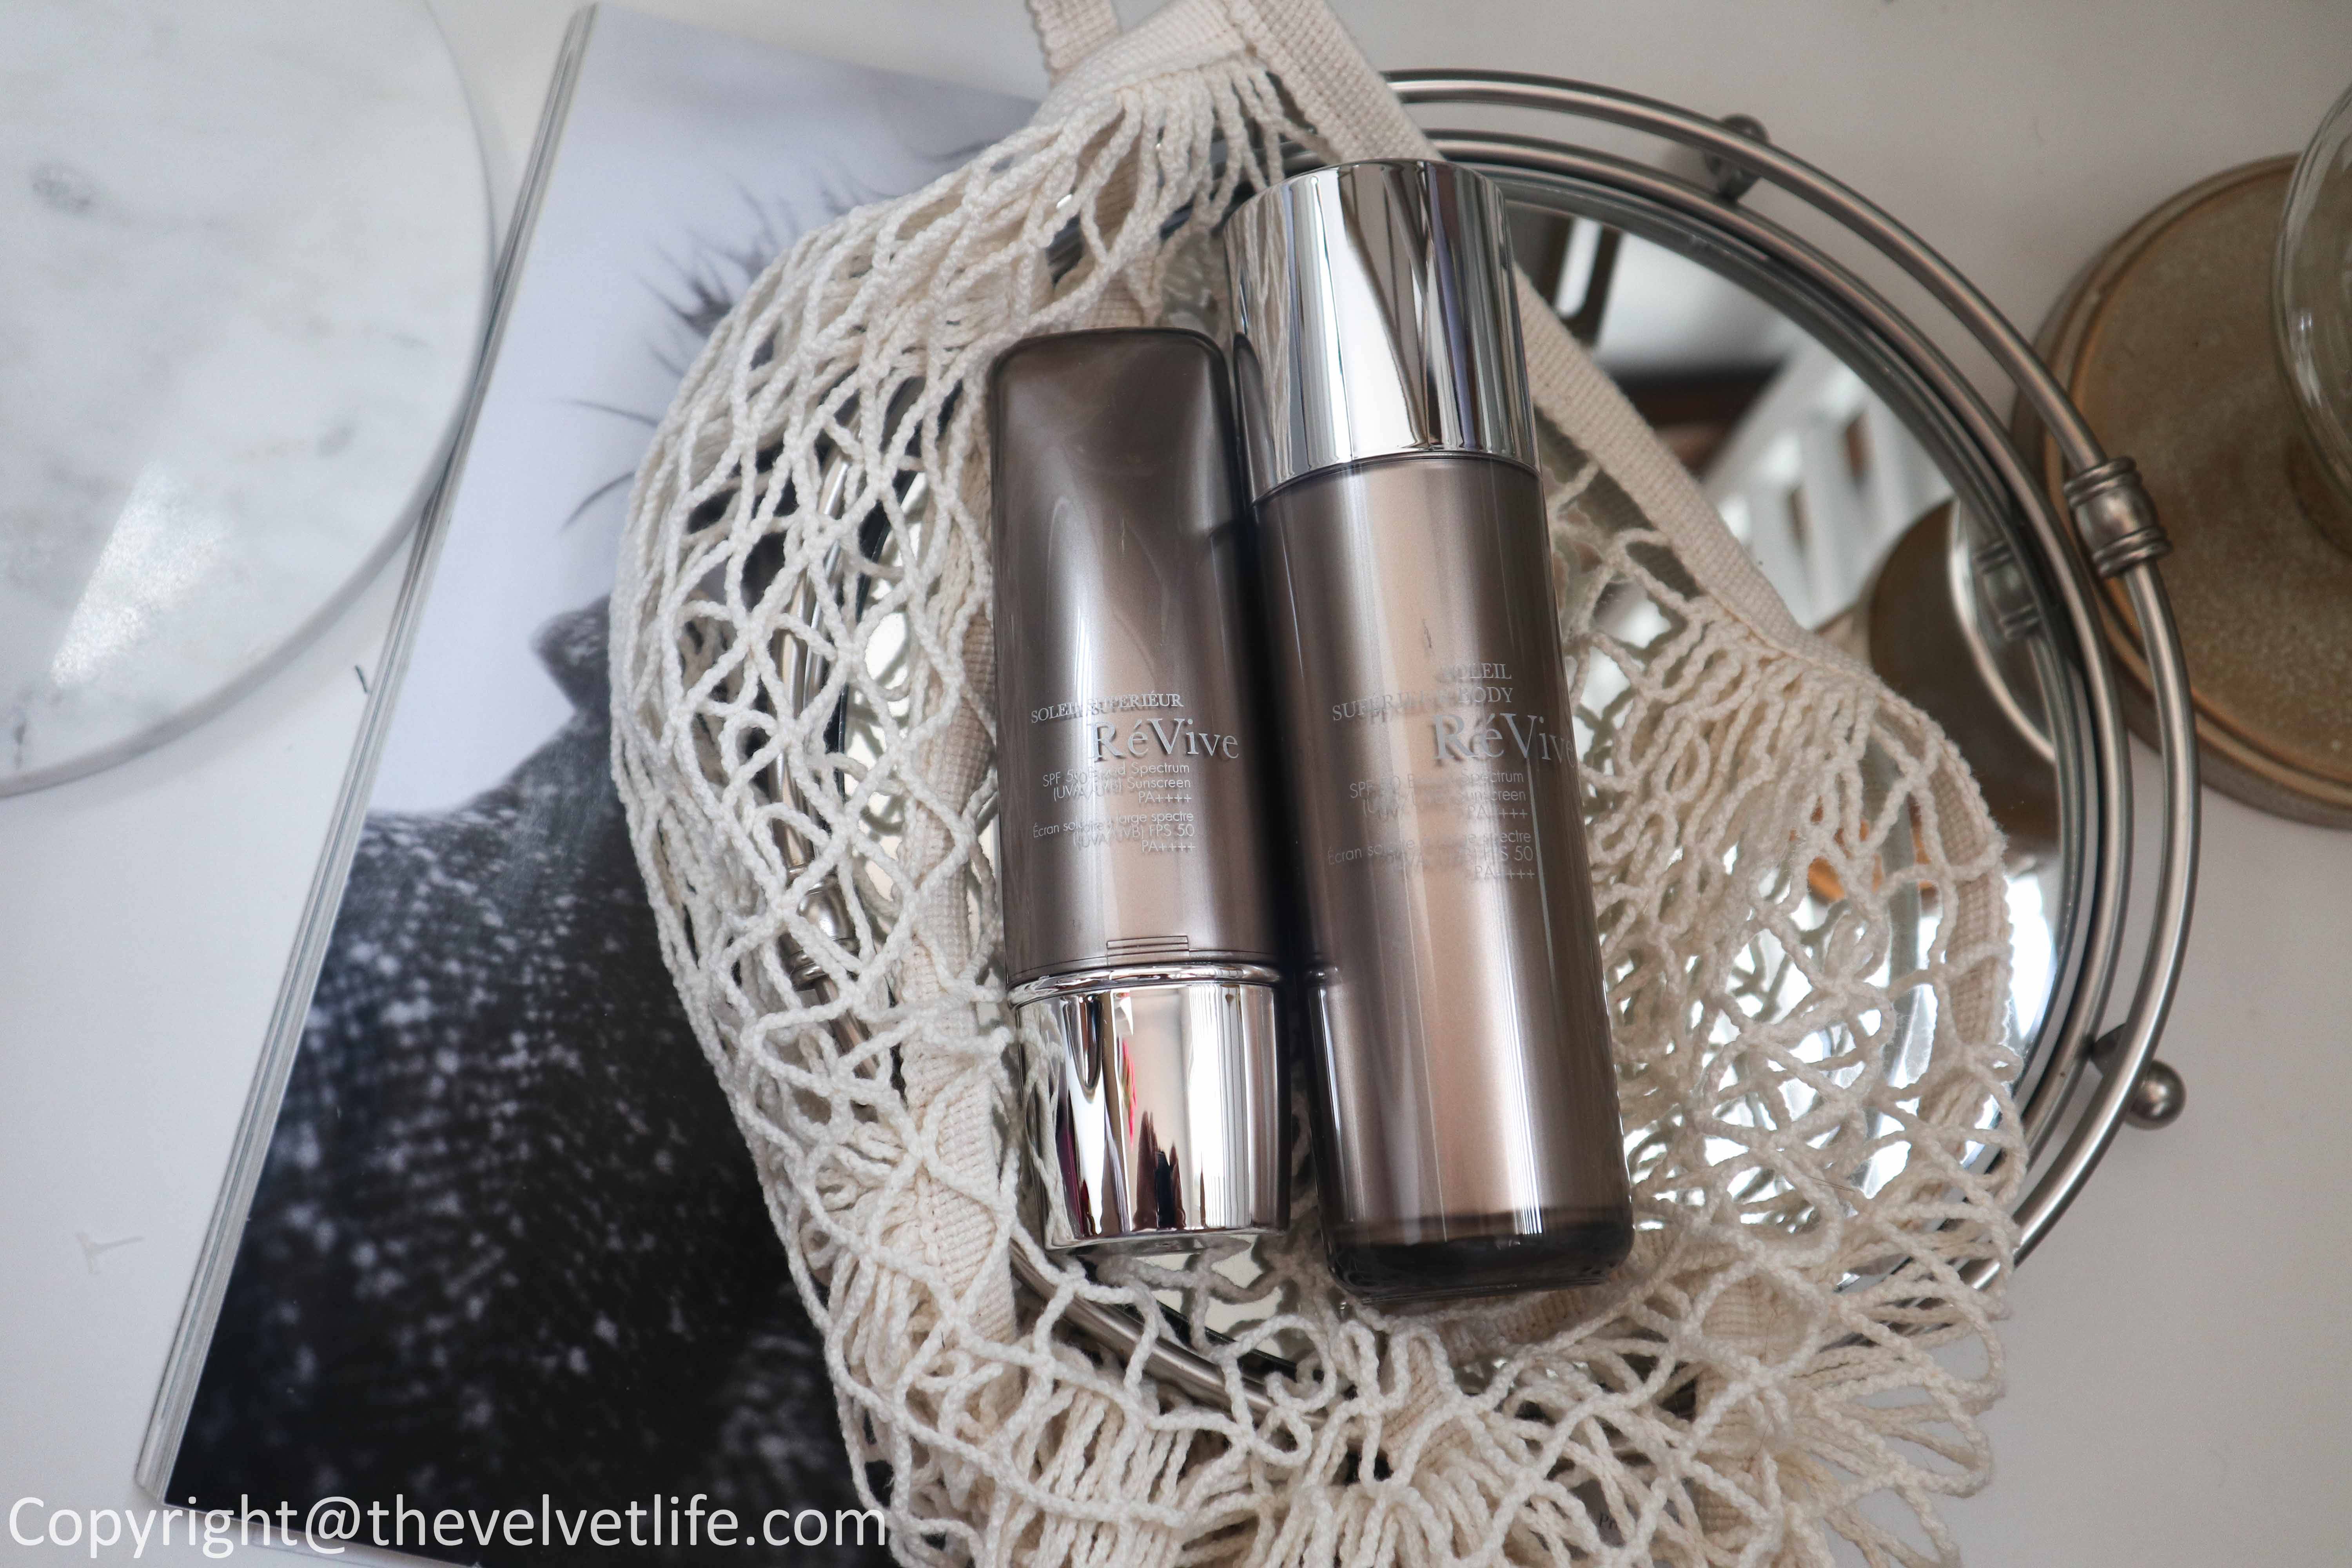 Review of new ReVive Skincare Glow Elixir Hydrating Radiance Oil, Soleil Superieur Broad Spectrum SPF 50 Sunscreen PA ++++ , Soleil Superieur Body, Perfectif Even Skin Tone Cream, Defensif Environmental Antioxidant Booster, Masque de Radiance